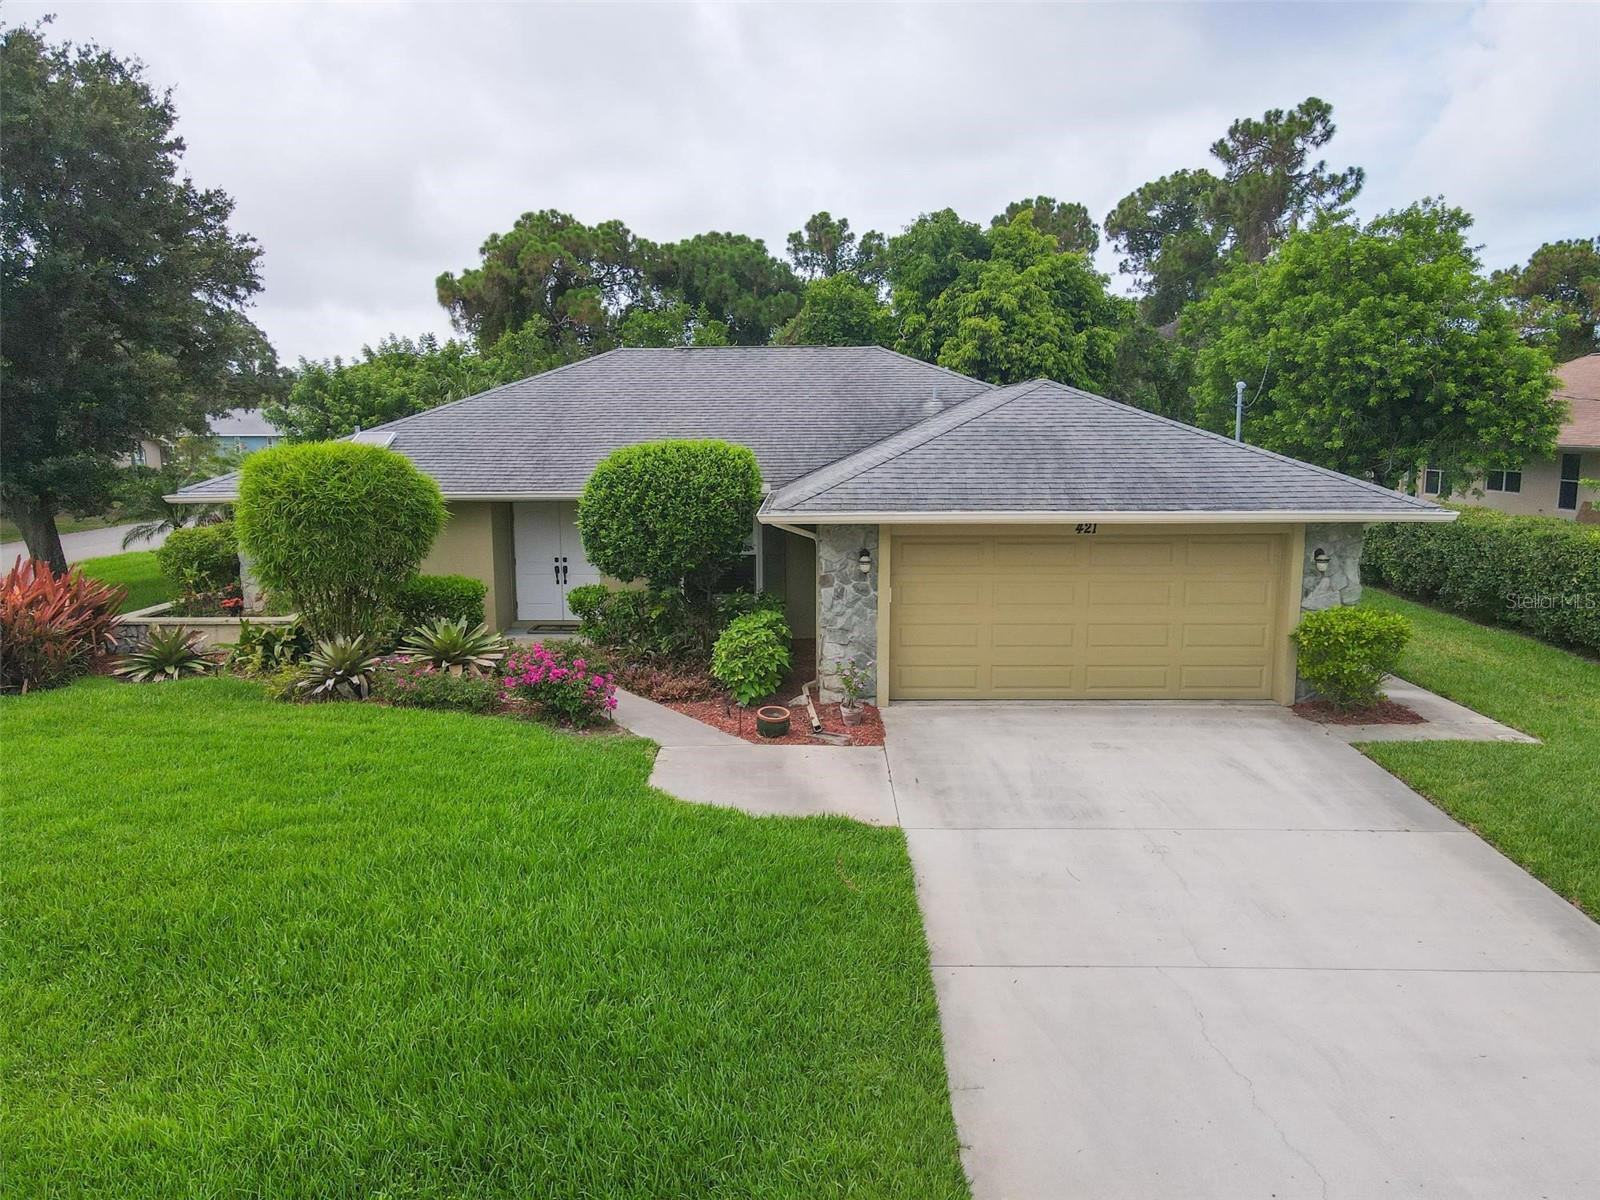 Primary photo of recently sold MLS# D6119690